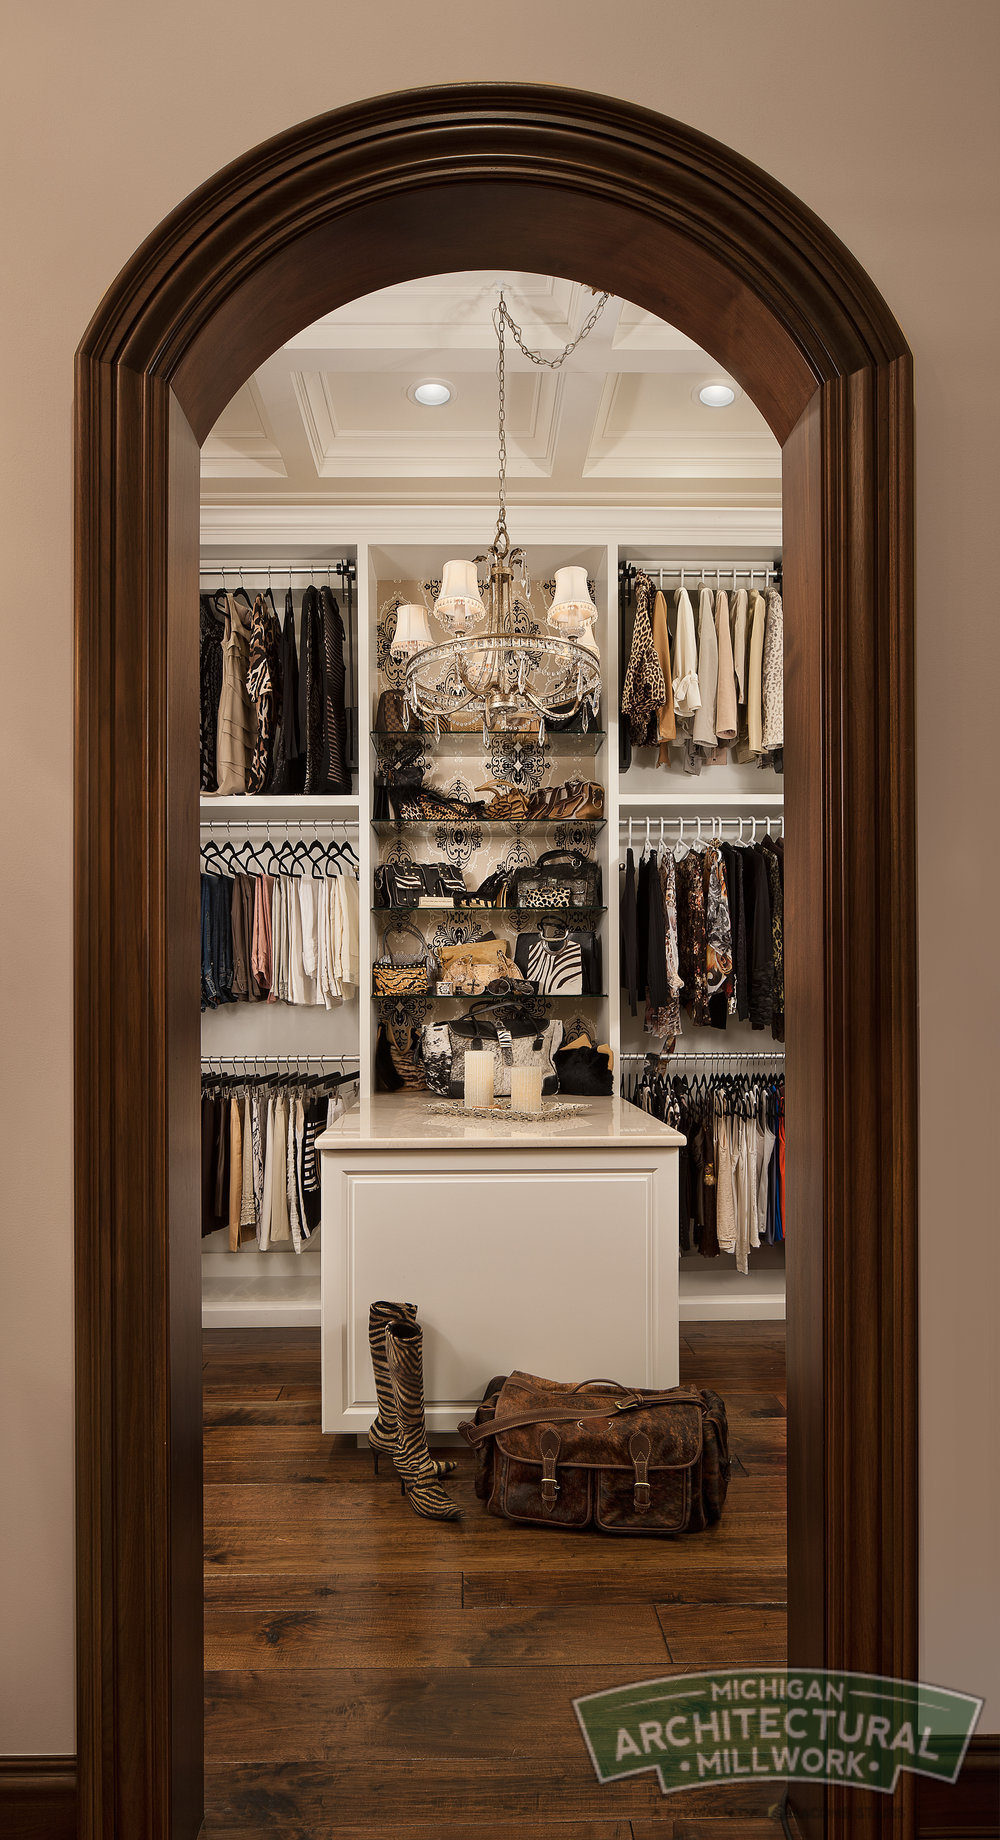 Michigan Architectural Millwork- Moulding and Millwork Photo-14.jpg